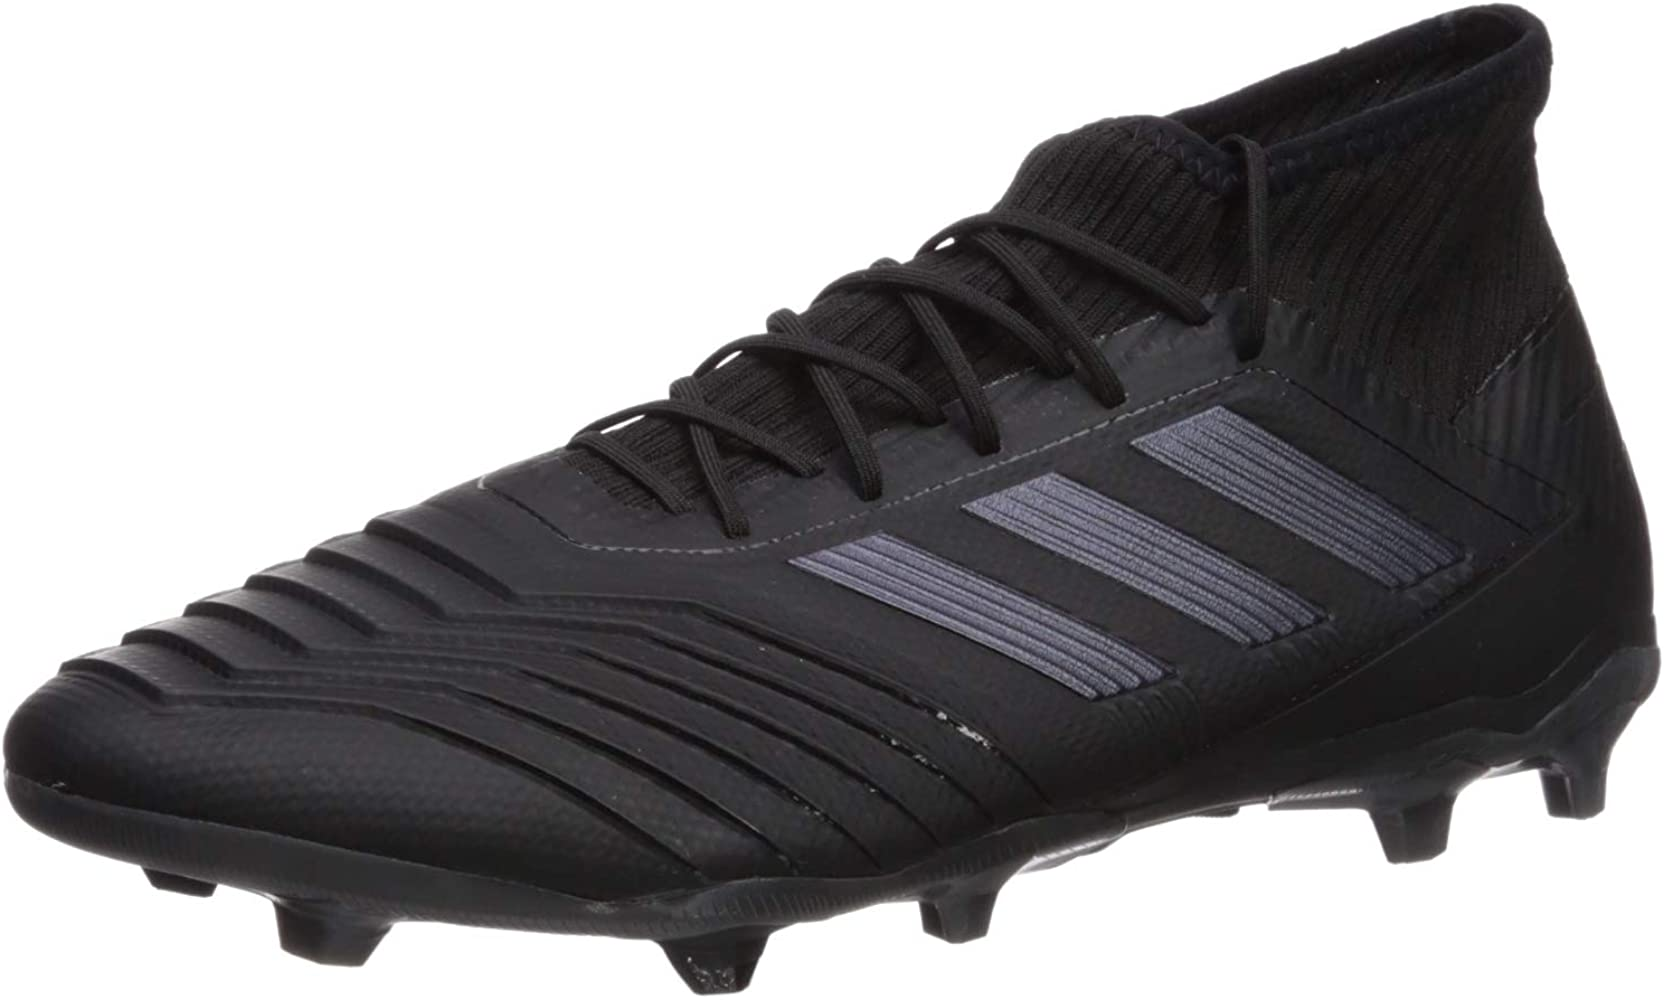 adidas Predator 19.3 Firm Ground Boots Black